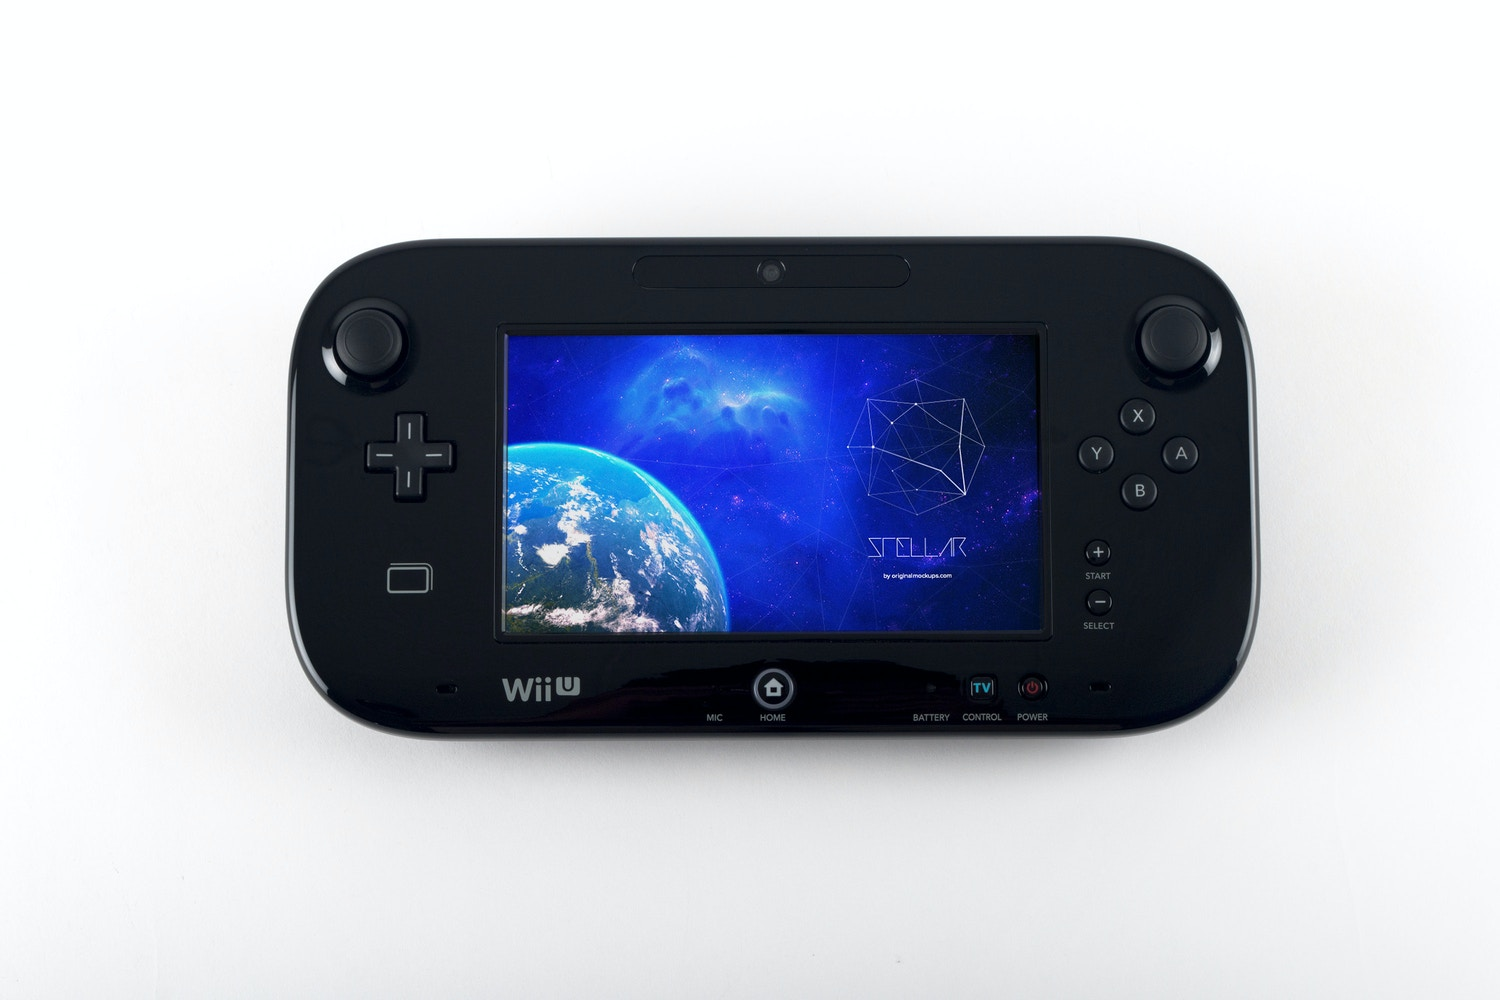 Wii U Deluxe Gamepad Mockup 03 by Original Mockups on Original Mockups